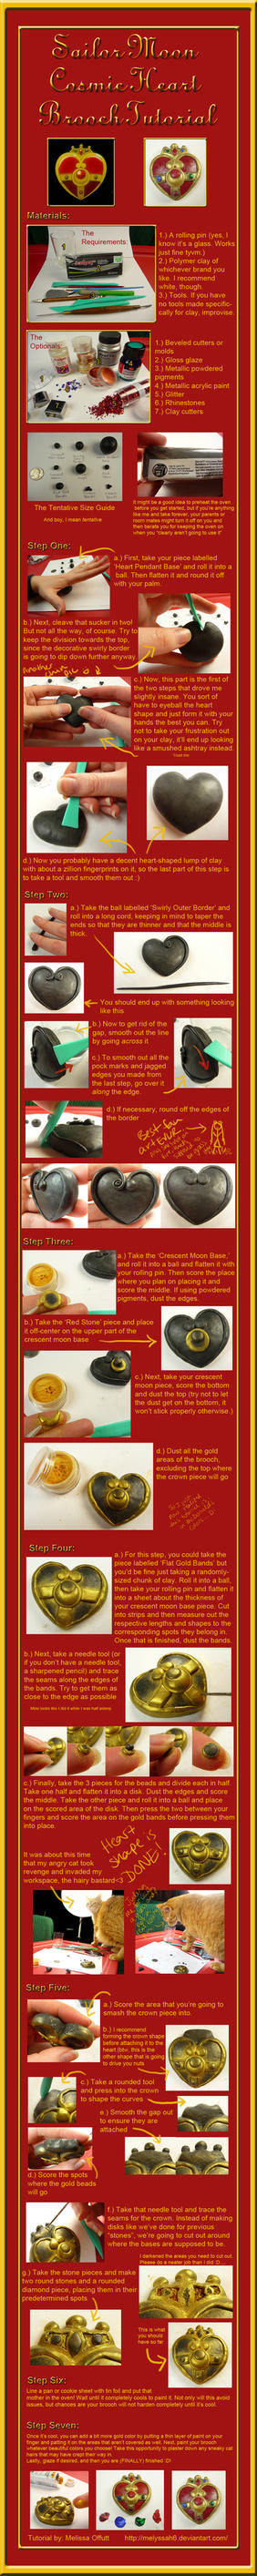 Sailor Moon Cosmic Heart Brooch Tutorial by Melyssah6